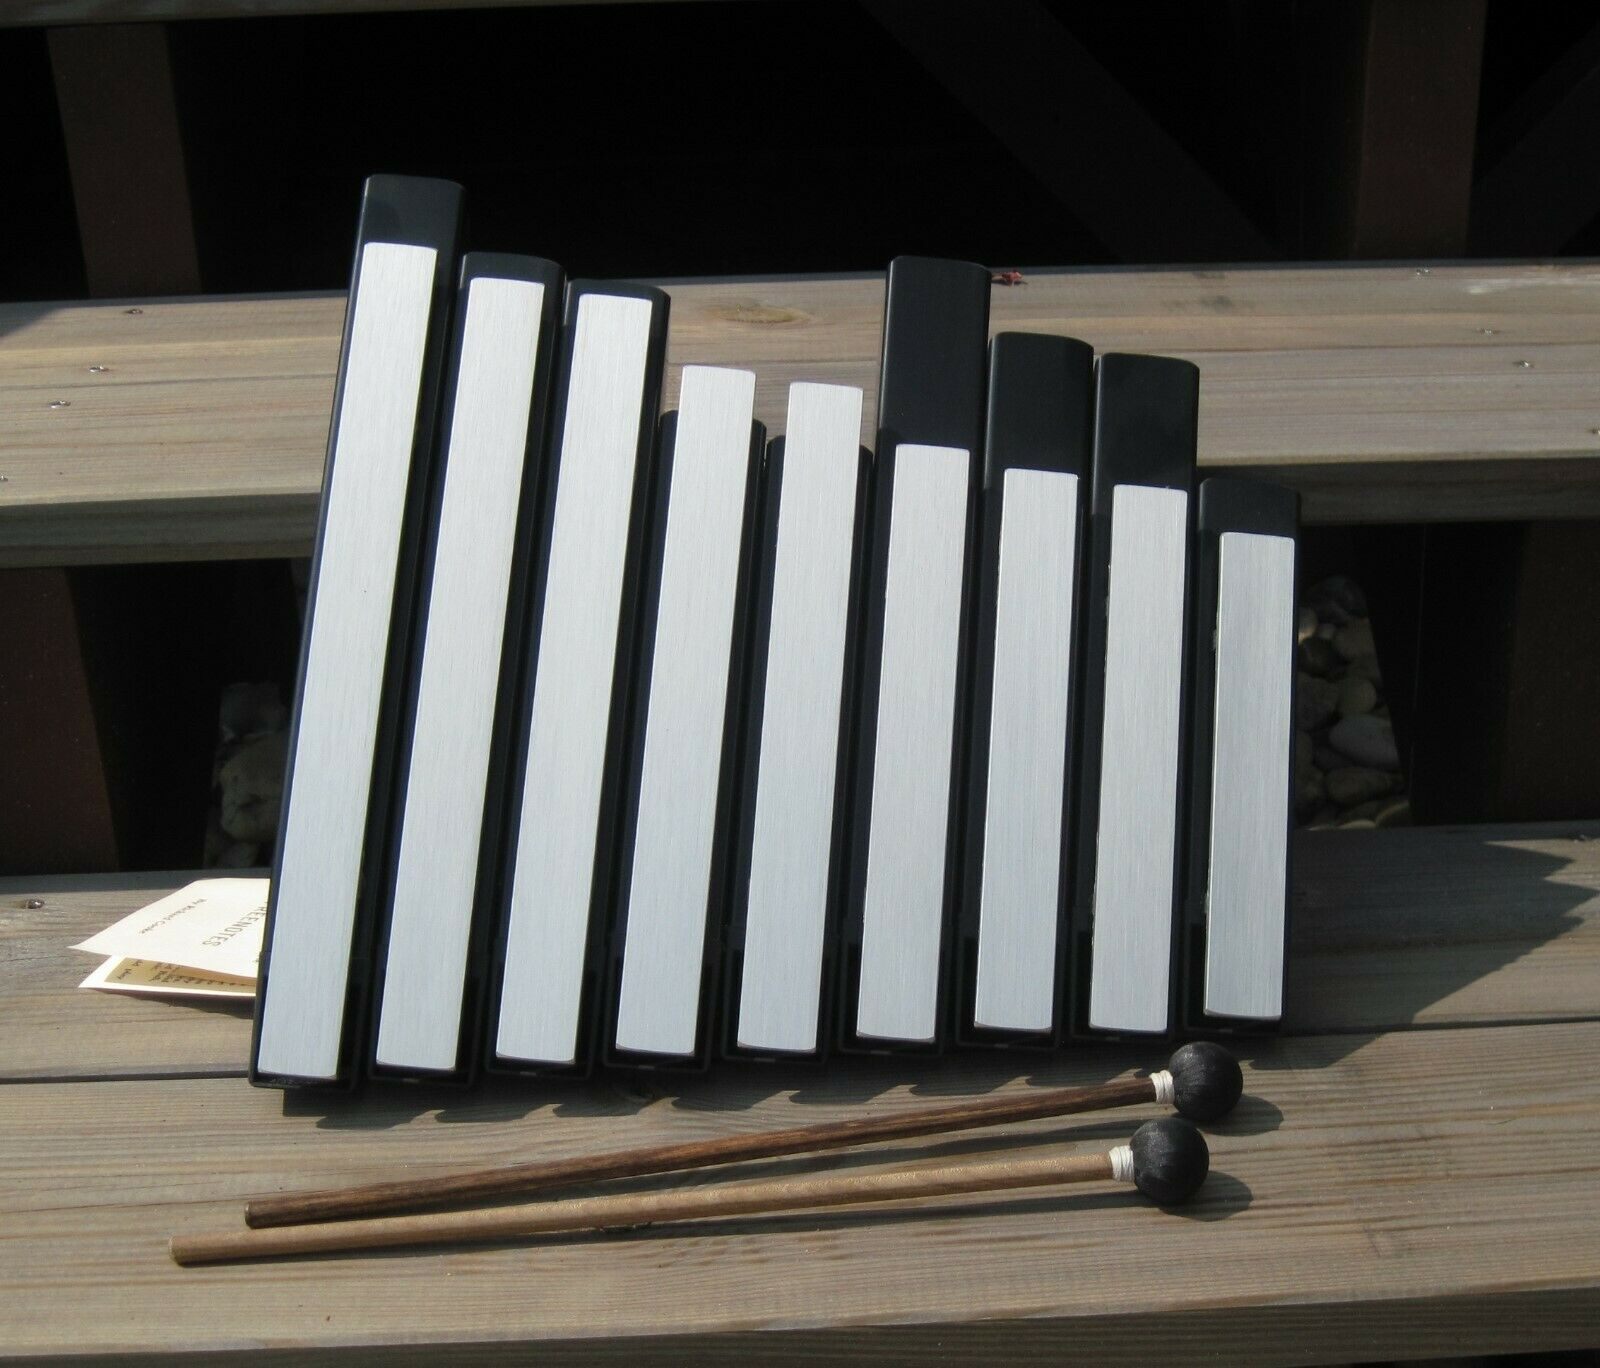 Xylophone - MeGrößephone - Wing - 9 notes - D-Akebono with Tuned Resonators